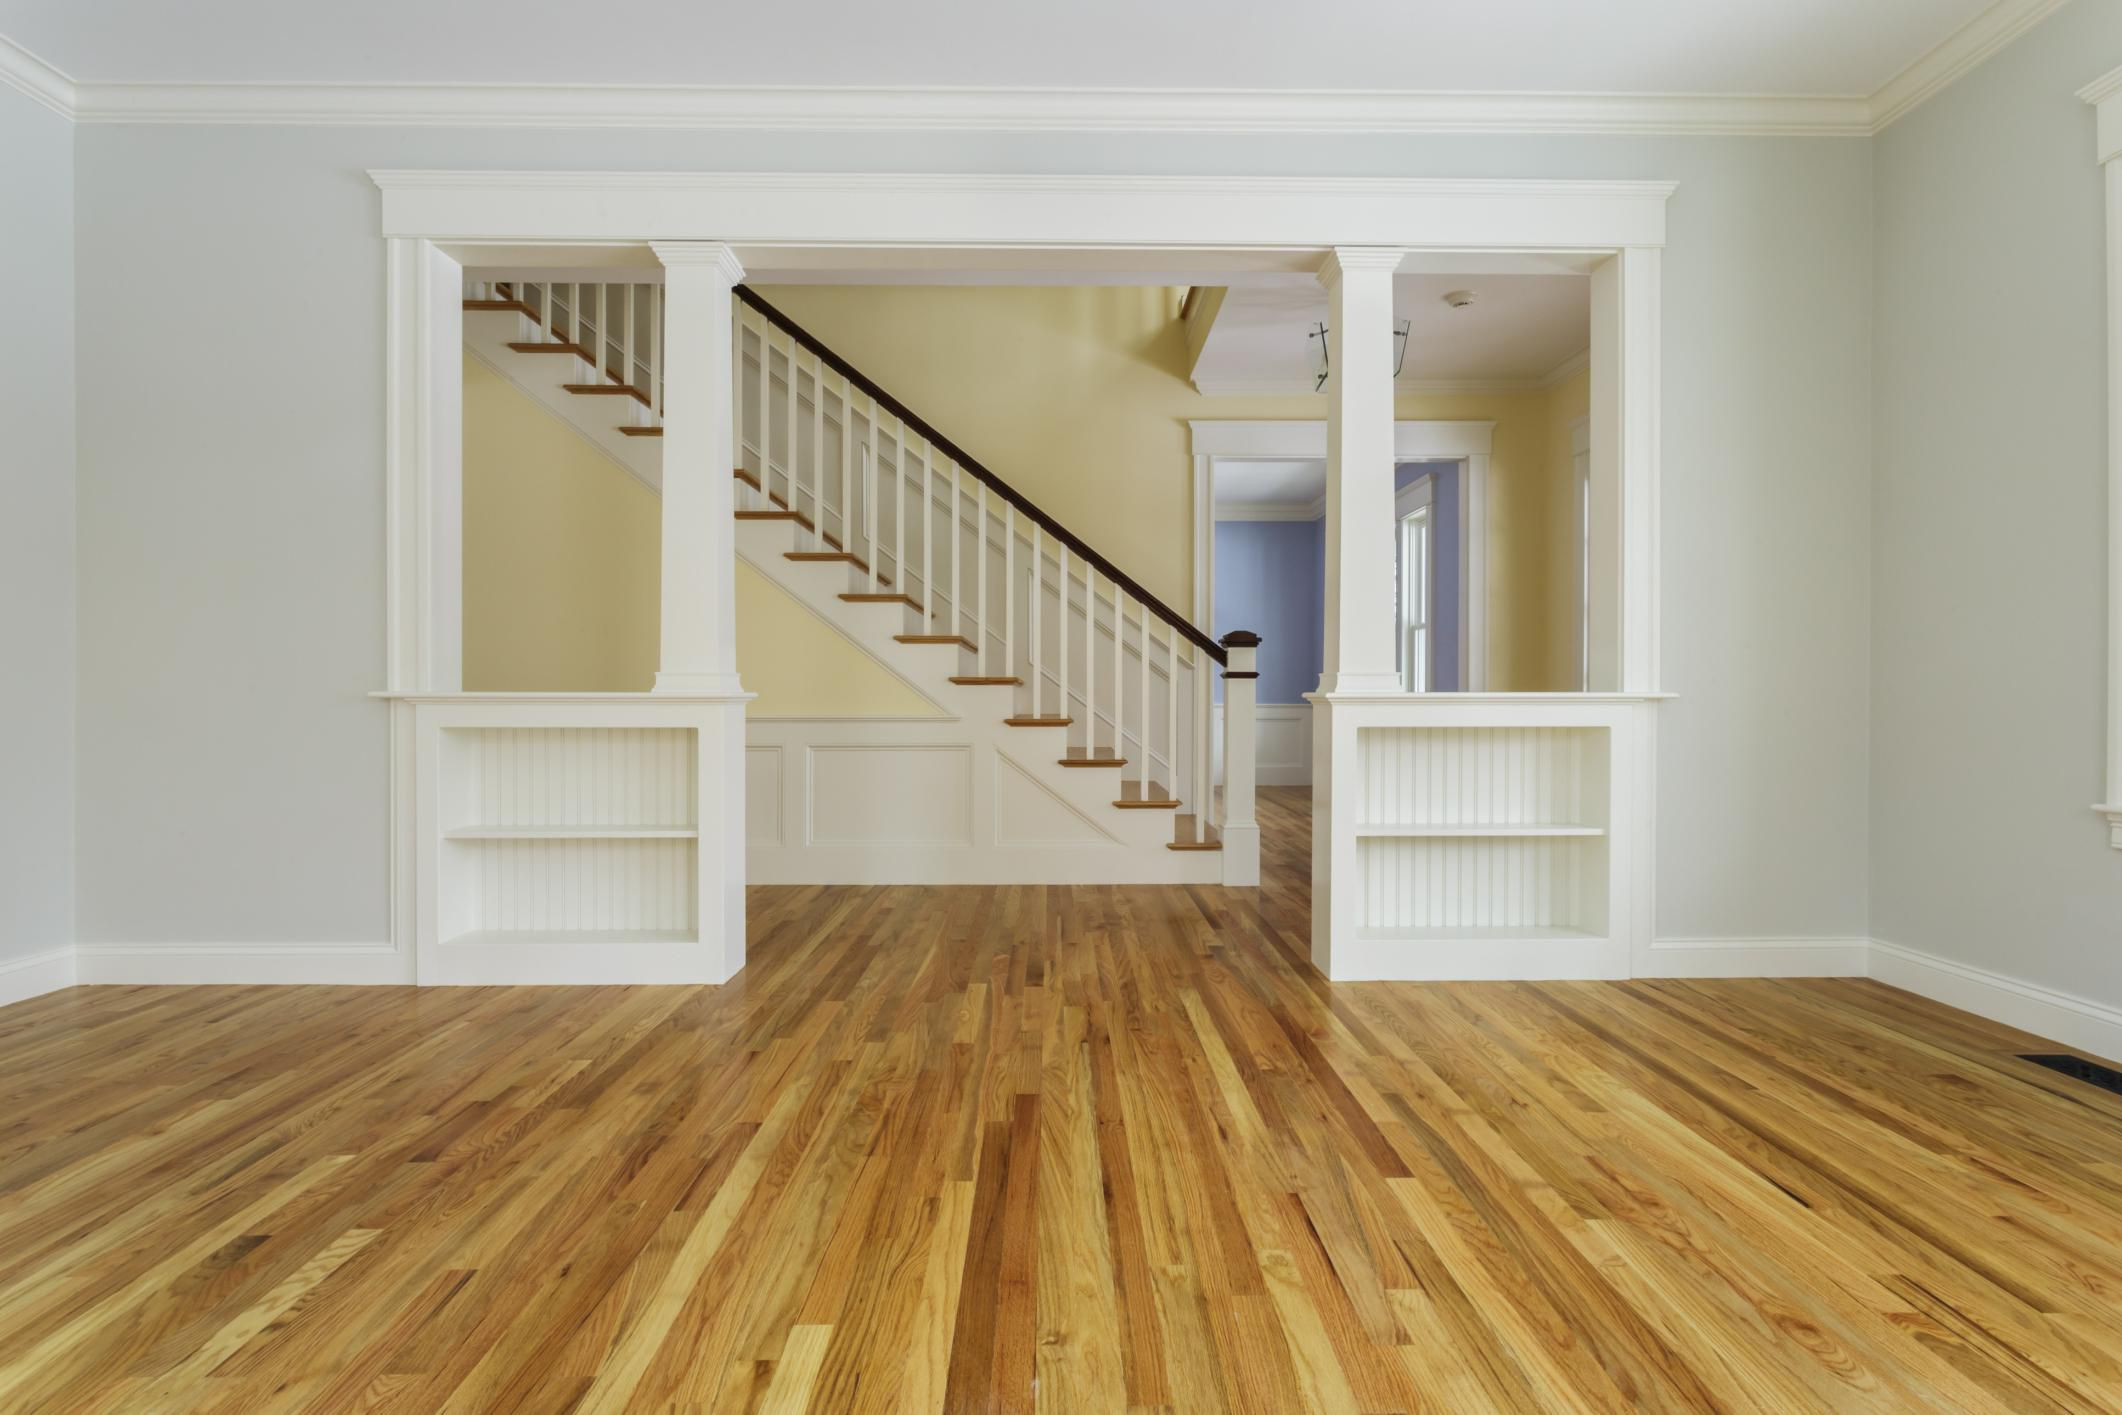 how to install tongue and groove hardwood flooring of guide to solid hardwood floors throughout 168686571 56a49f213df78cf772834e24